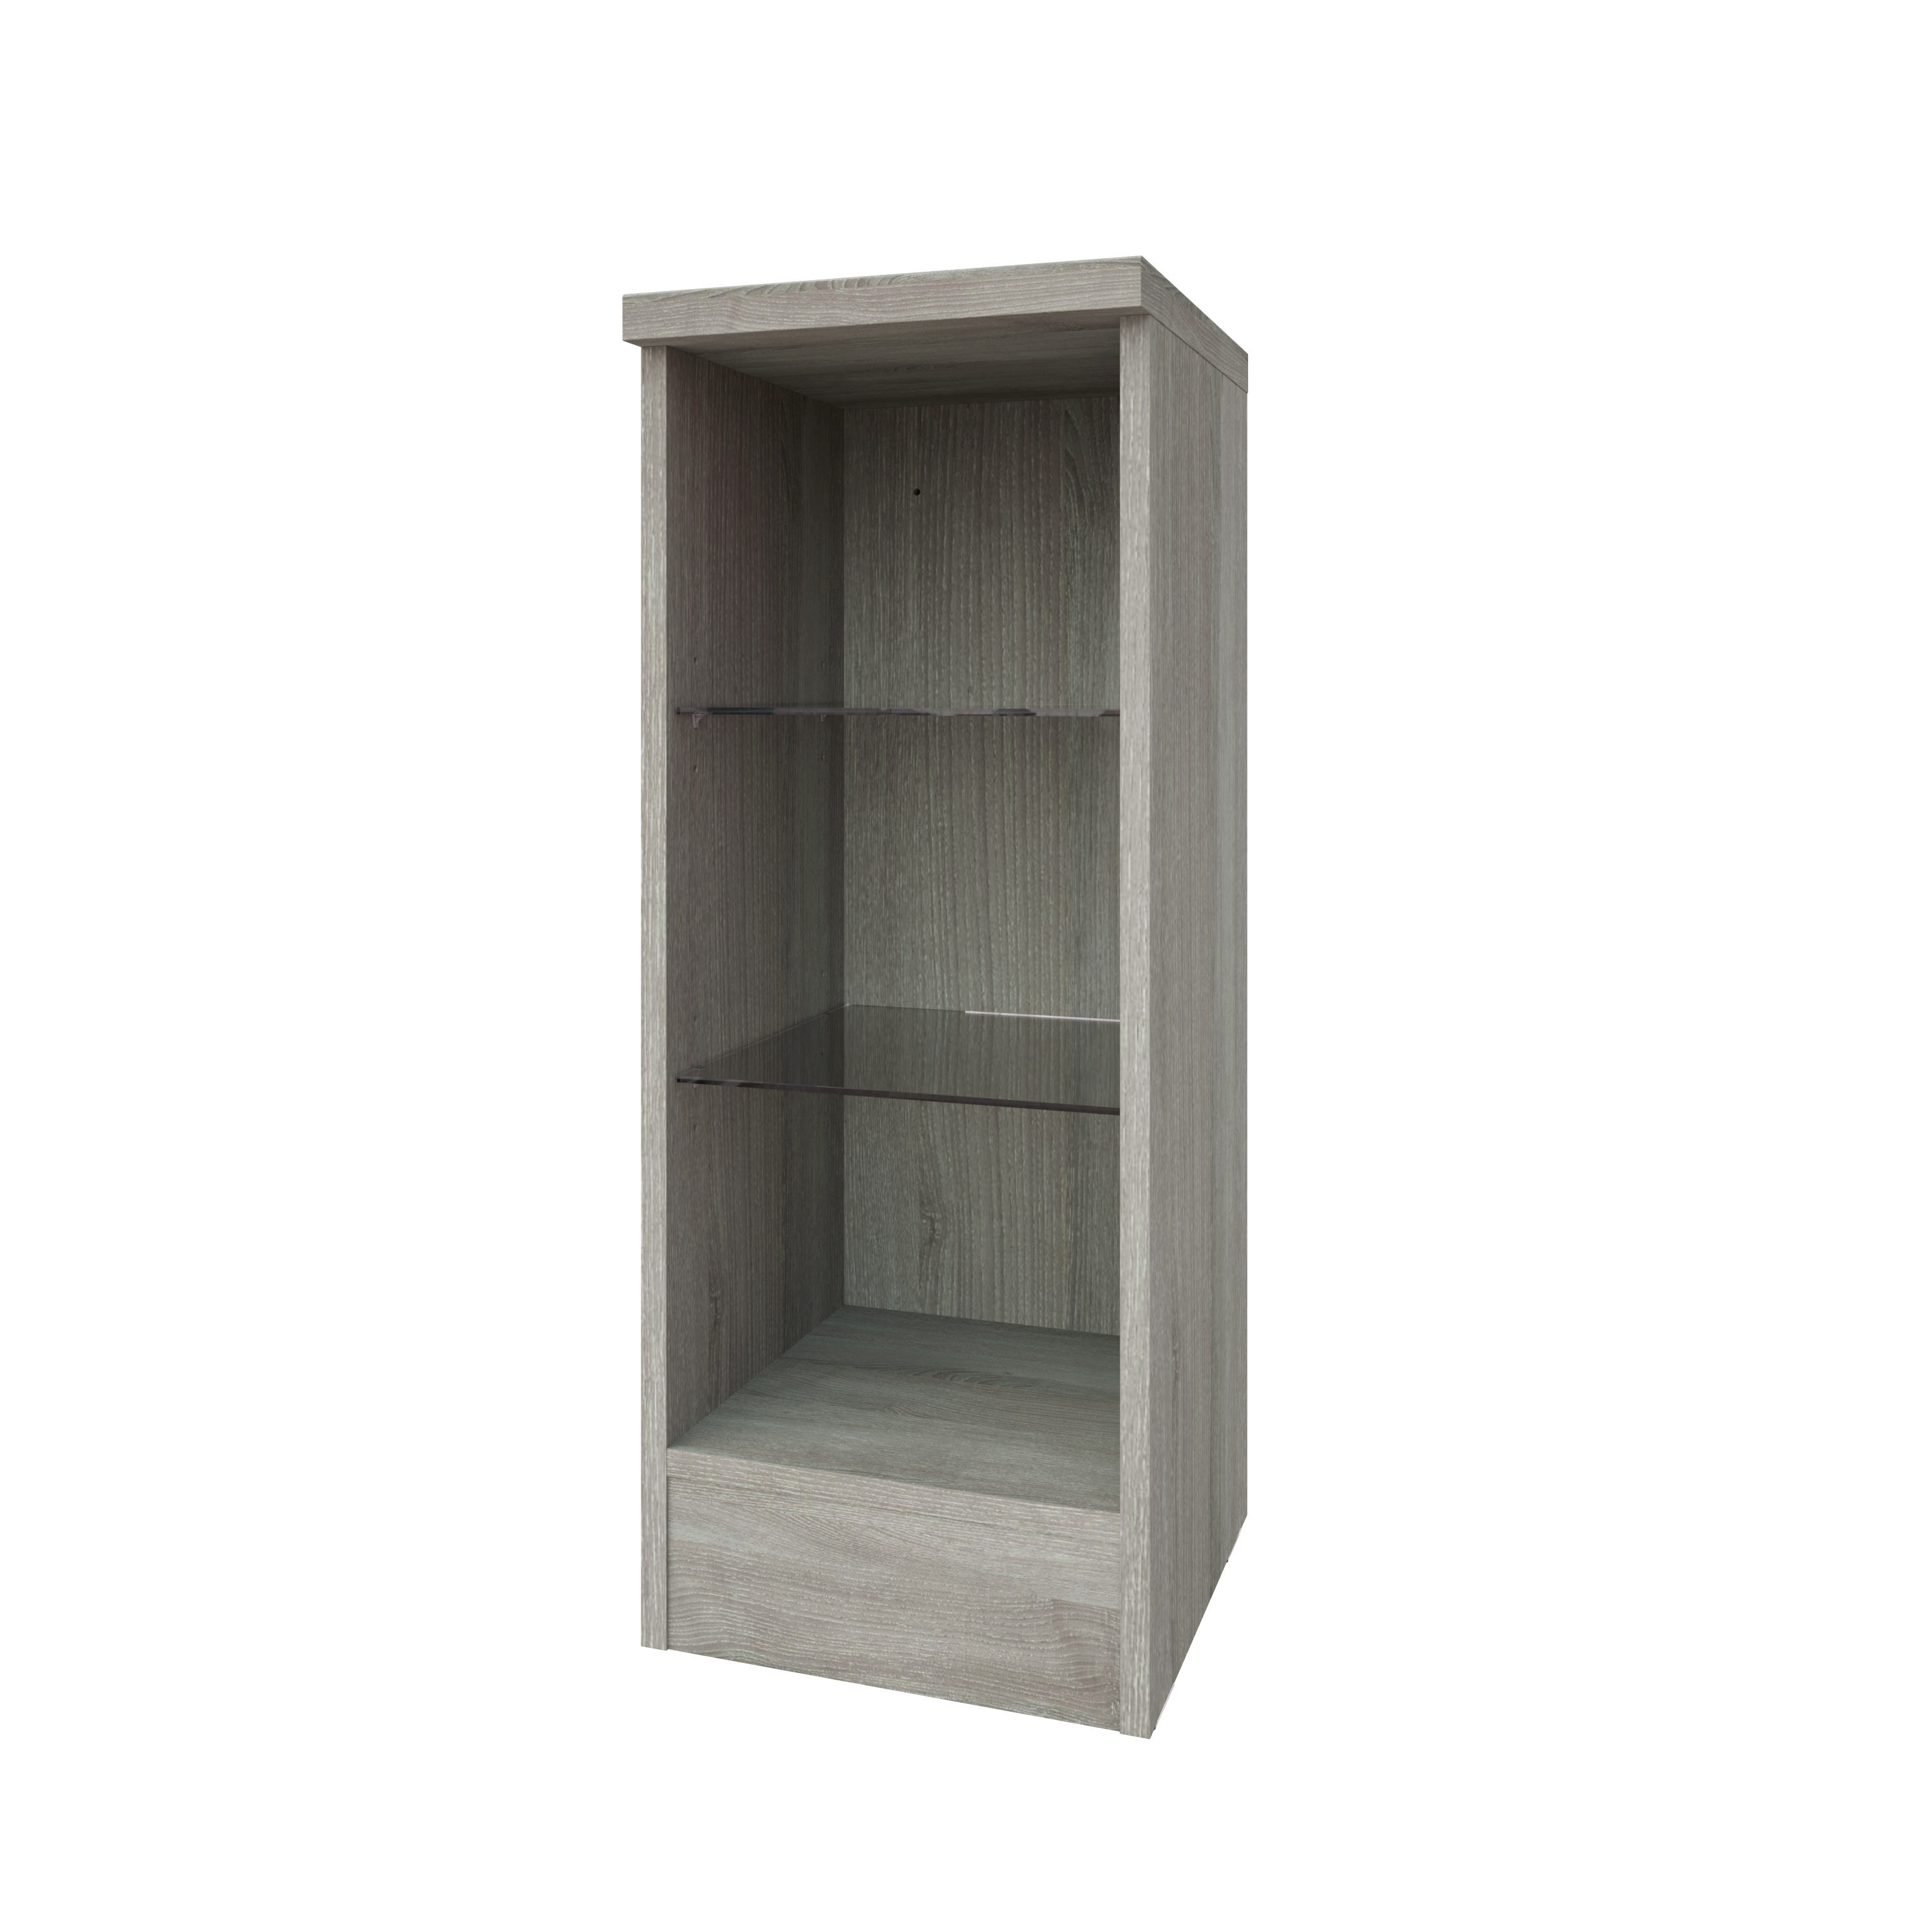 Purity 300mm Open Glass Shelf unit Grey Ash